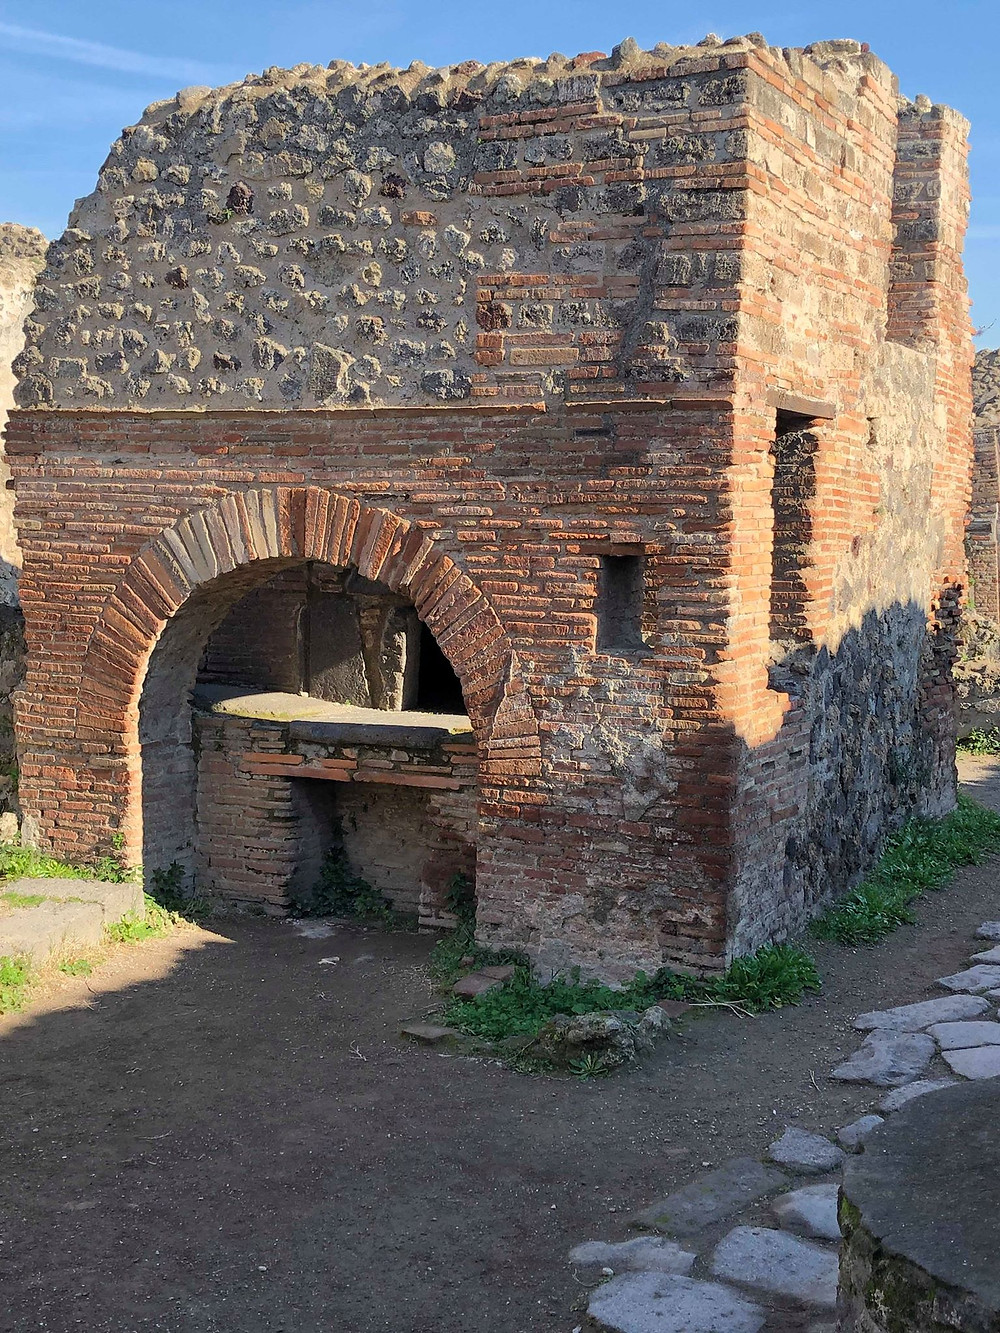 photograph of world's first pizza oven in pompeii ancient ruins italy europe